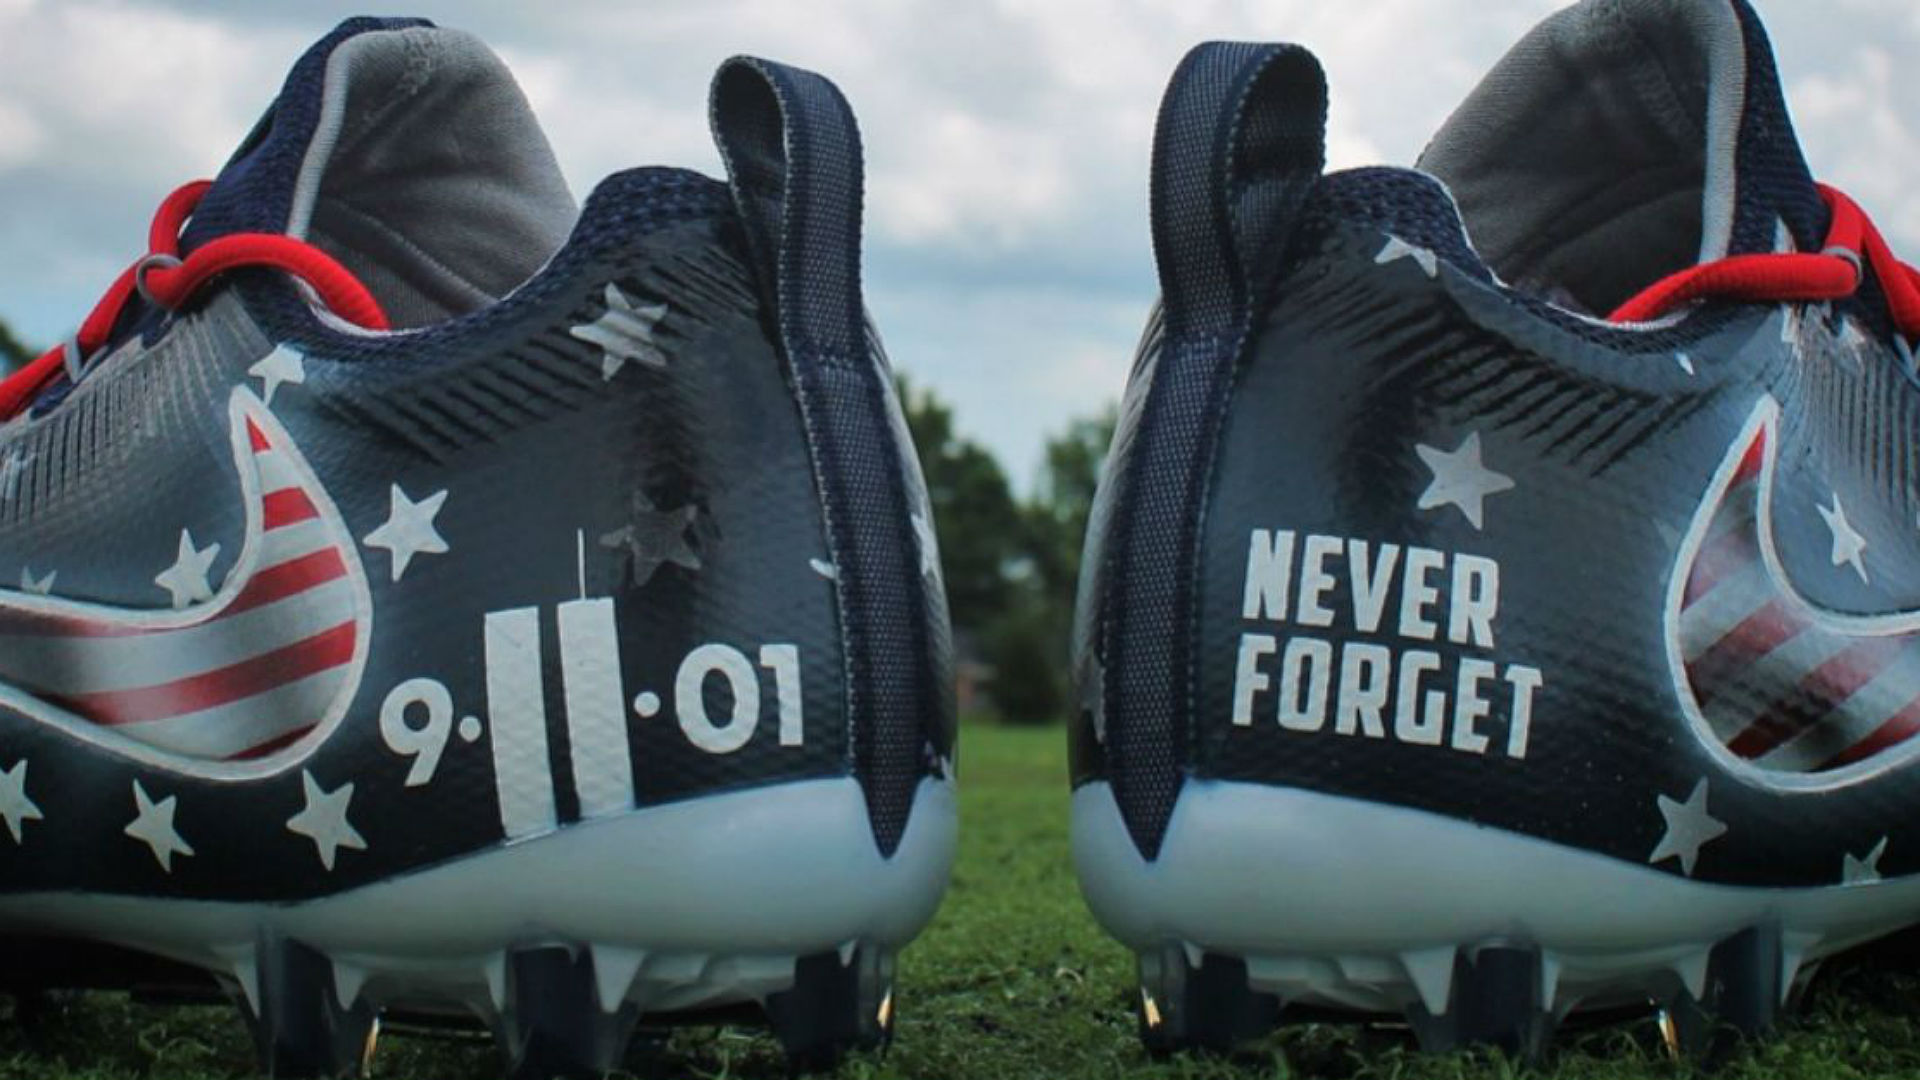 cfc8834db Mike Mularkey will pay his player s 9 11 cleats fine